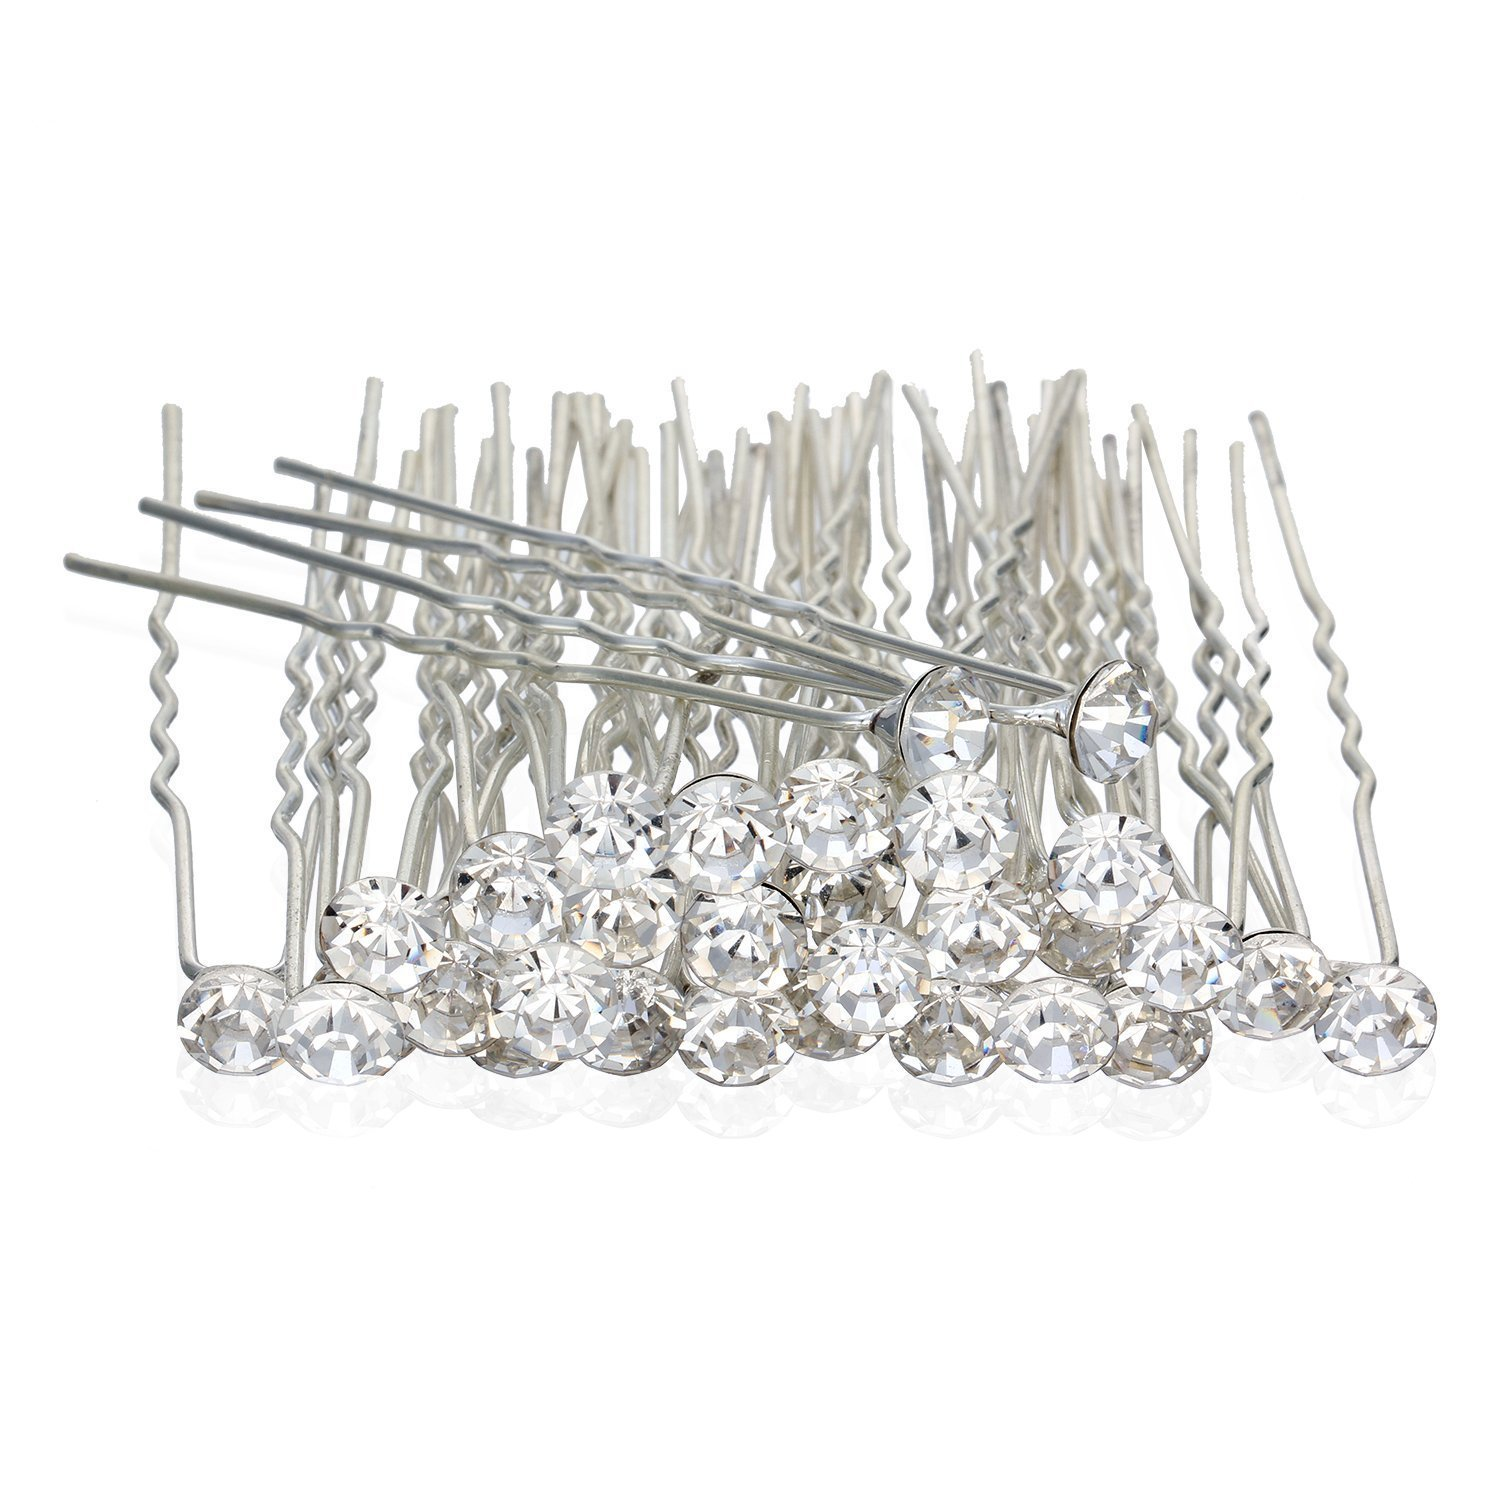 12pcs Black Rhinestone Crystal Metal Bobby Pin Hair Clip Updo Accessories Lots